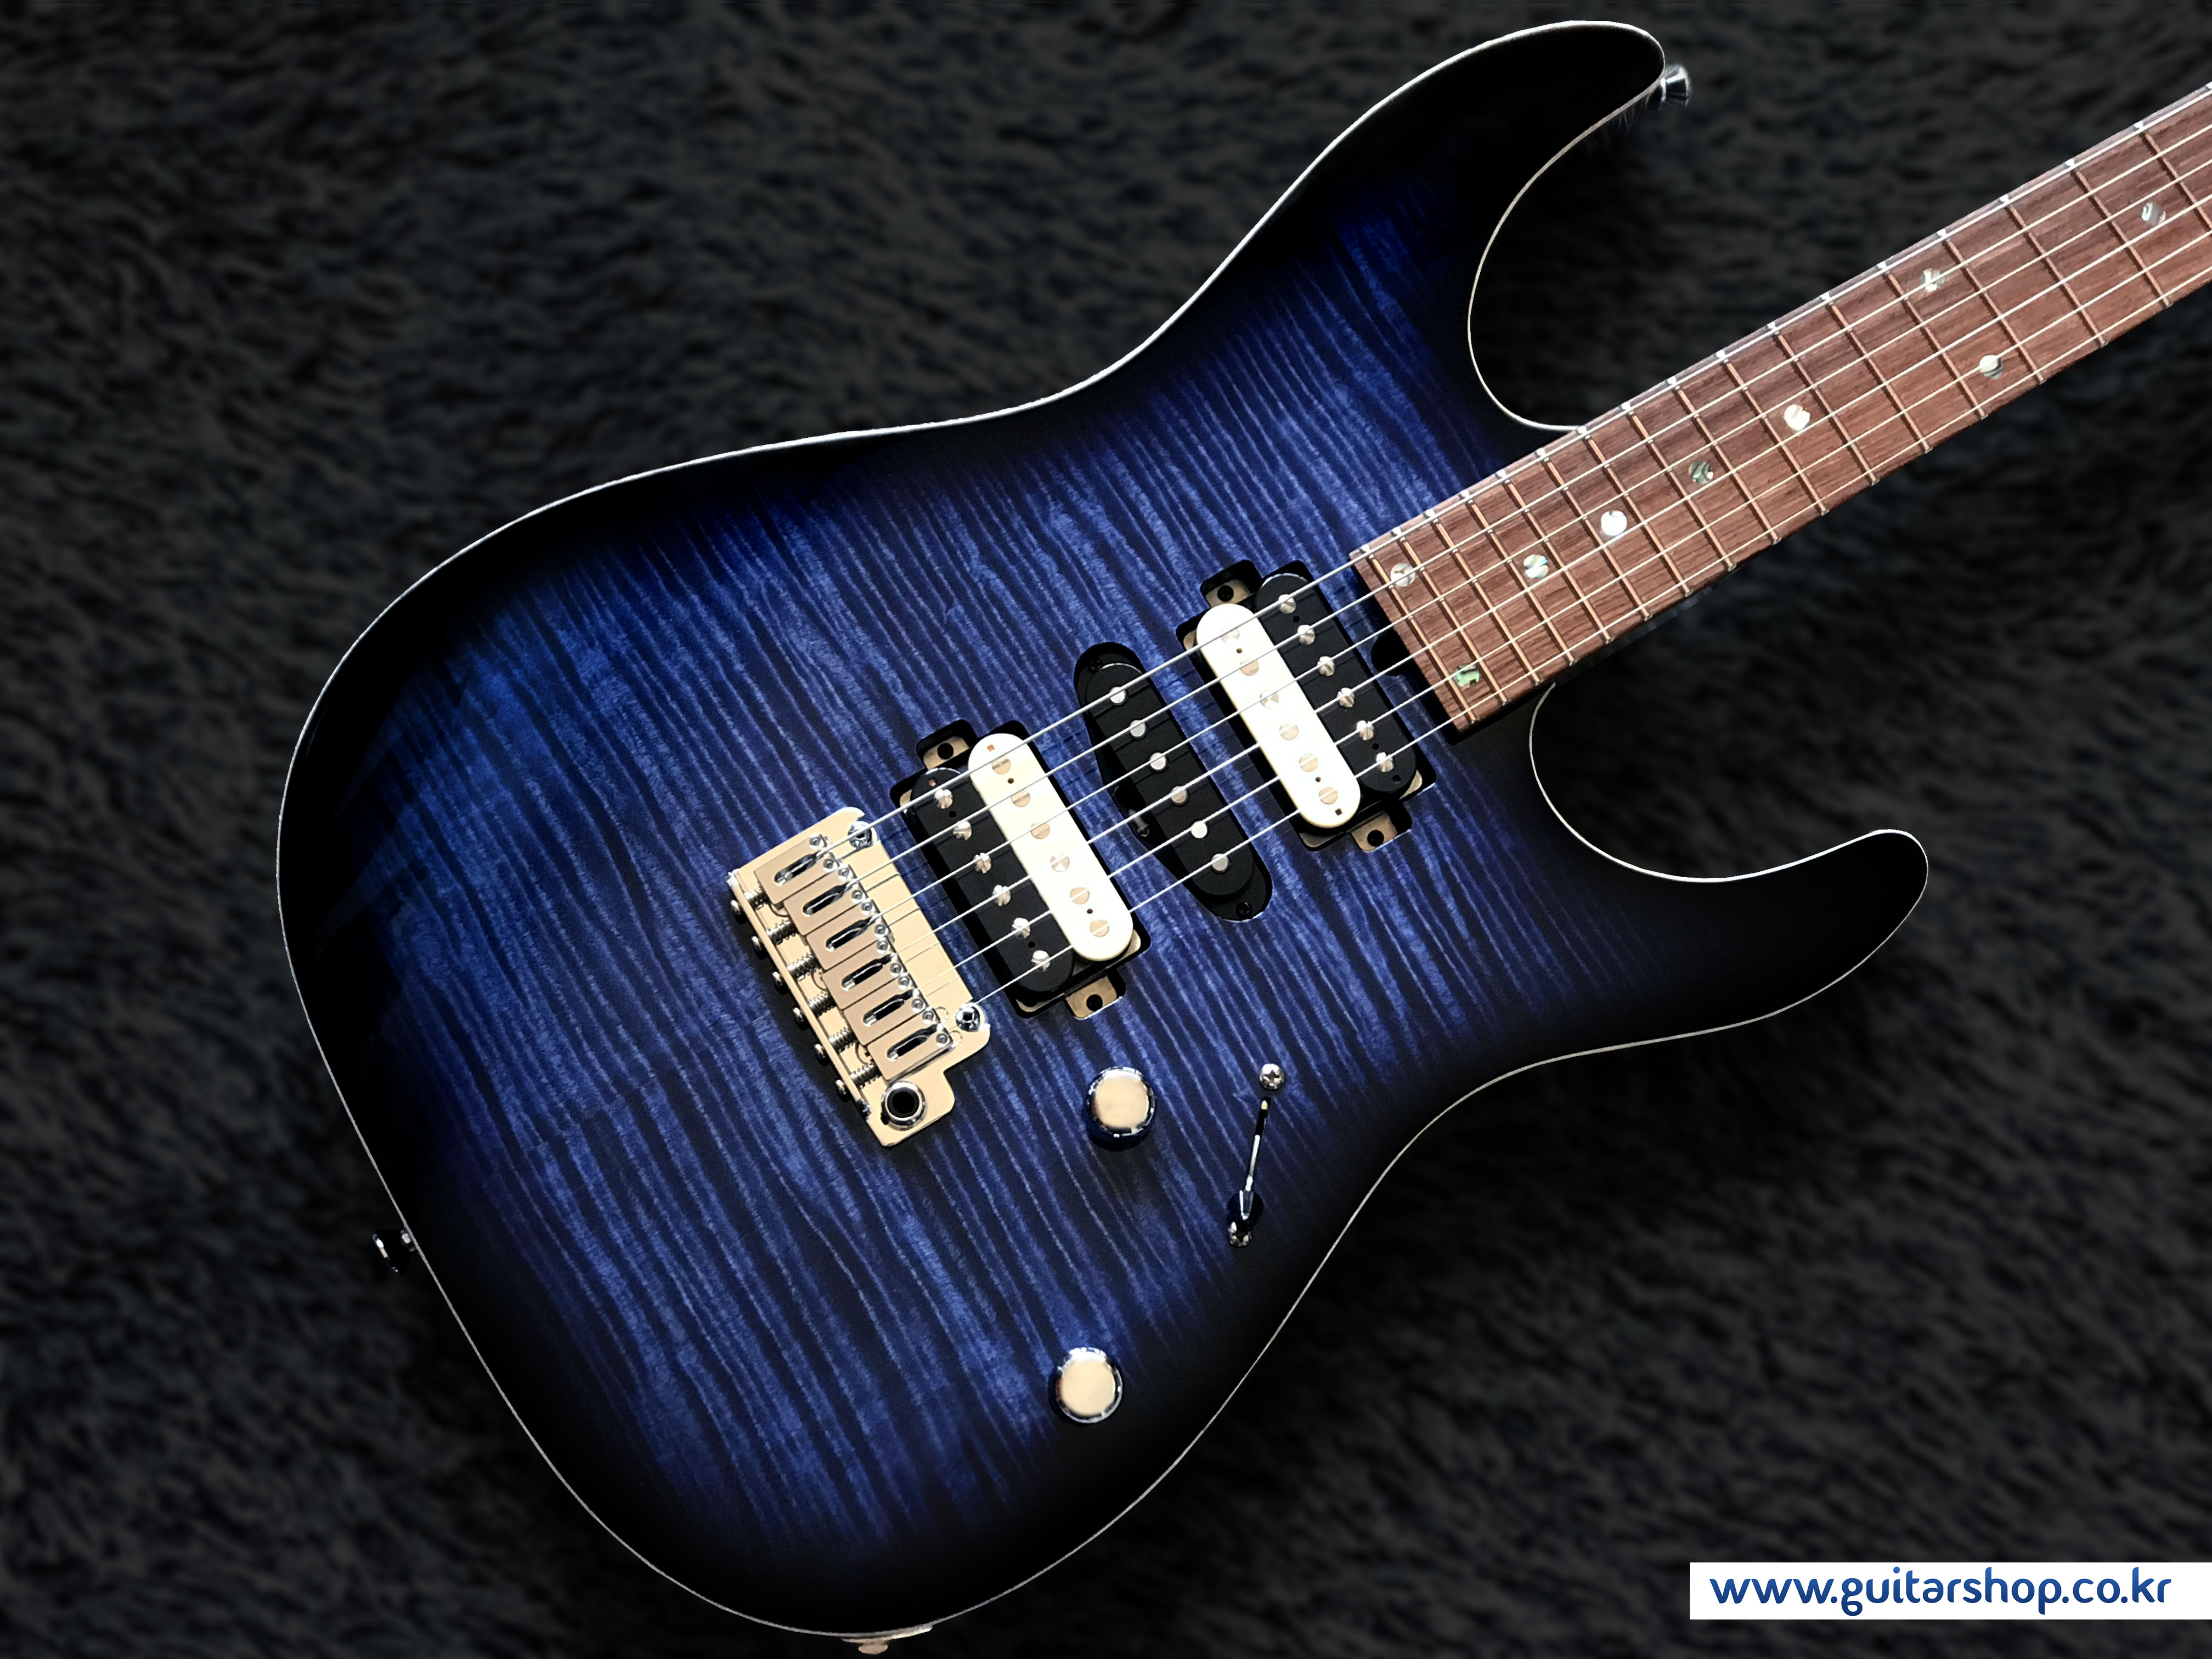 T's DST-Pro24 Mahogany-Limited GUITAR (Whale Blue Burst)